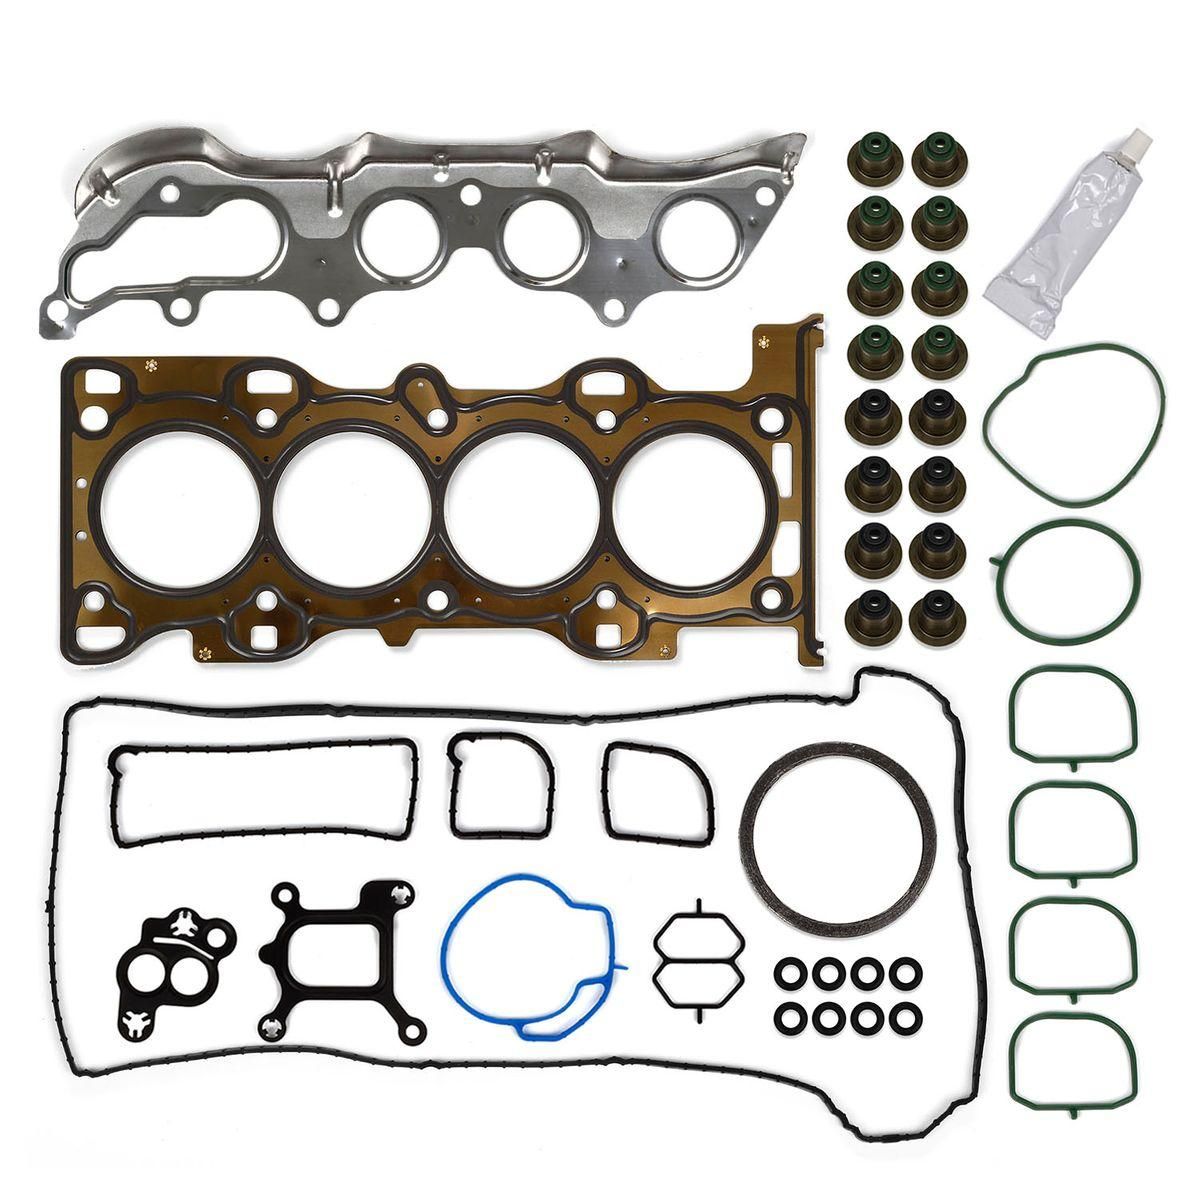 Cylinder Head Gasket Kit For 03-11 Ford Focus DURATEC 2.0